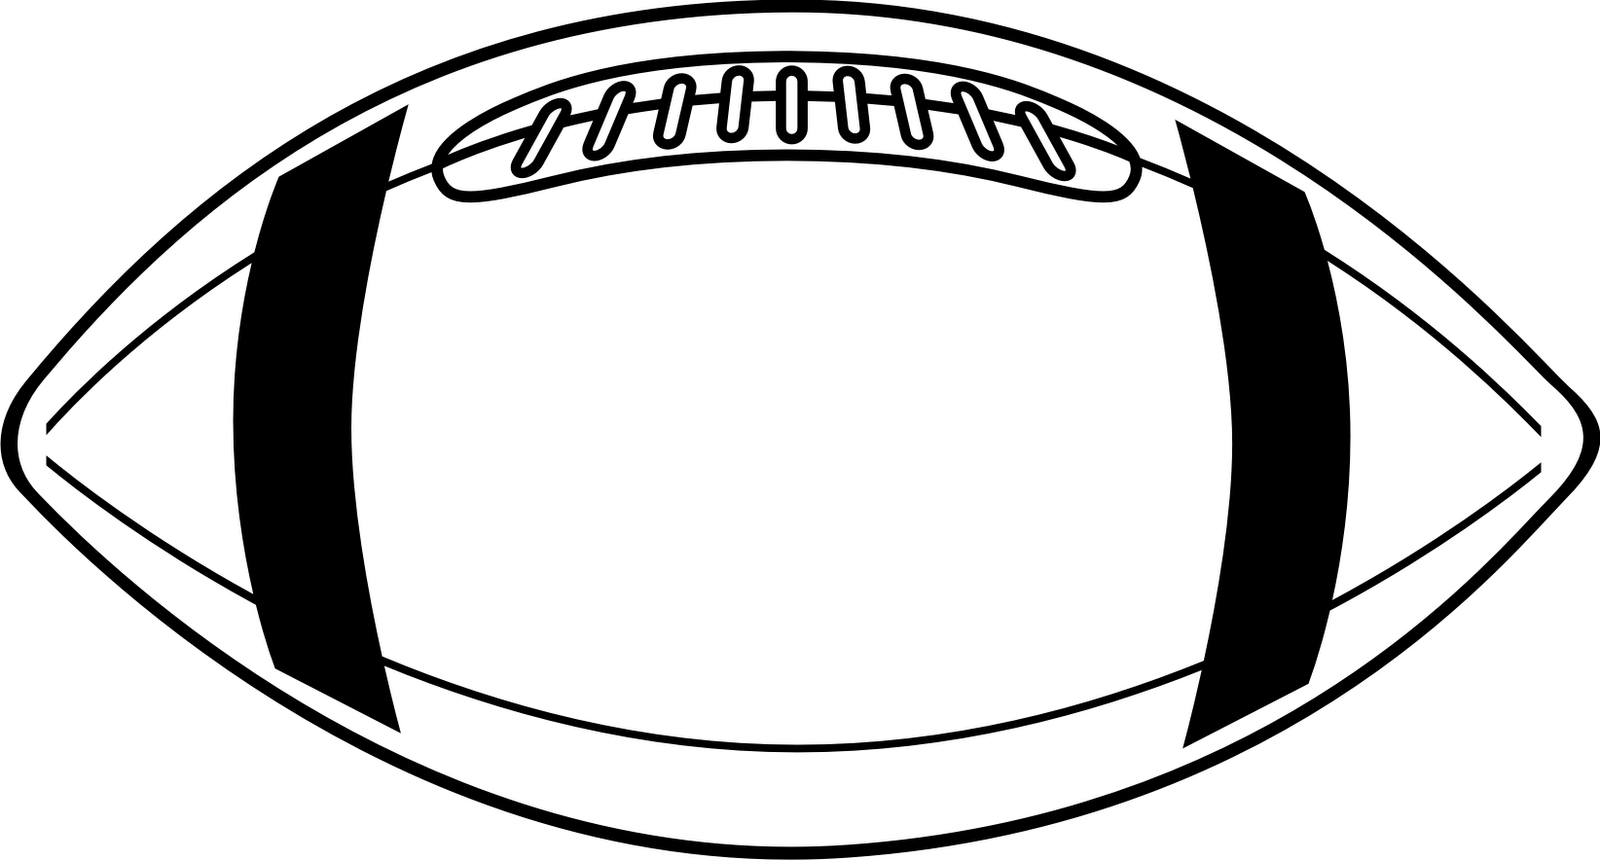 American Football Clipart Black And White | Clipart library - Free